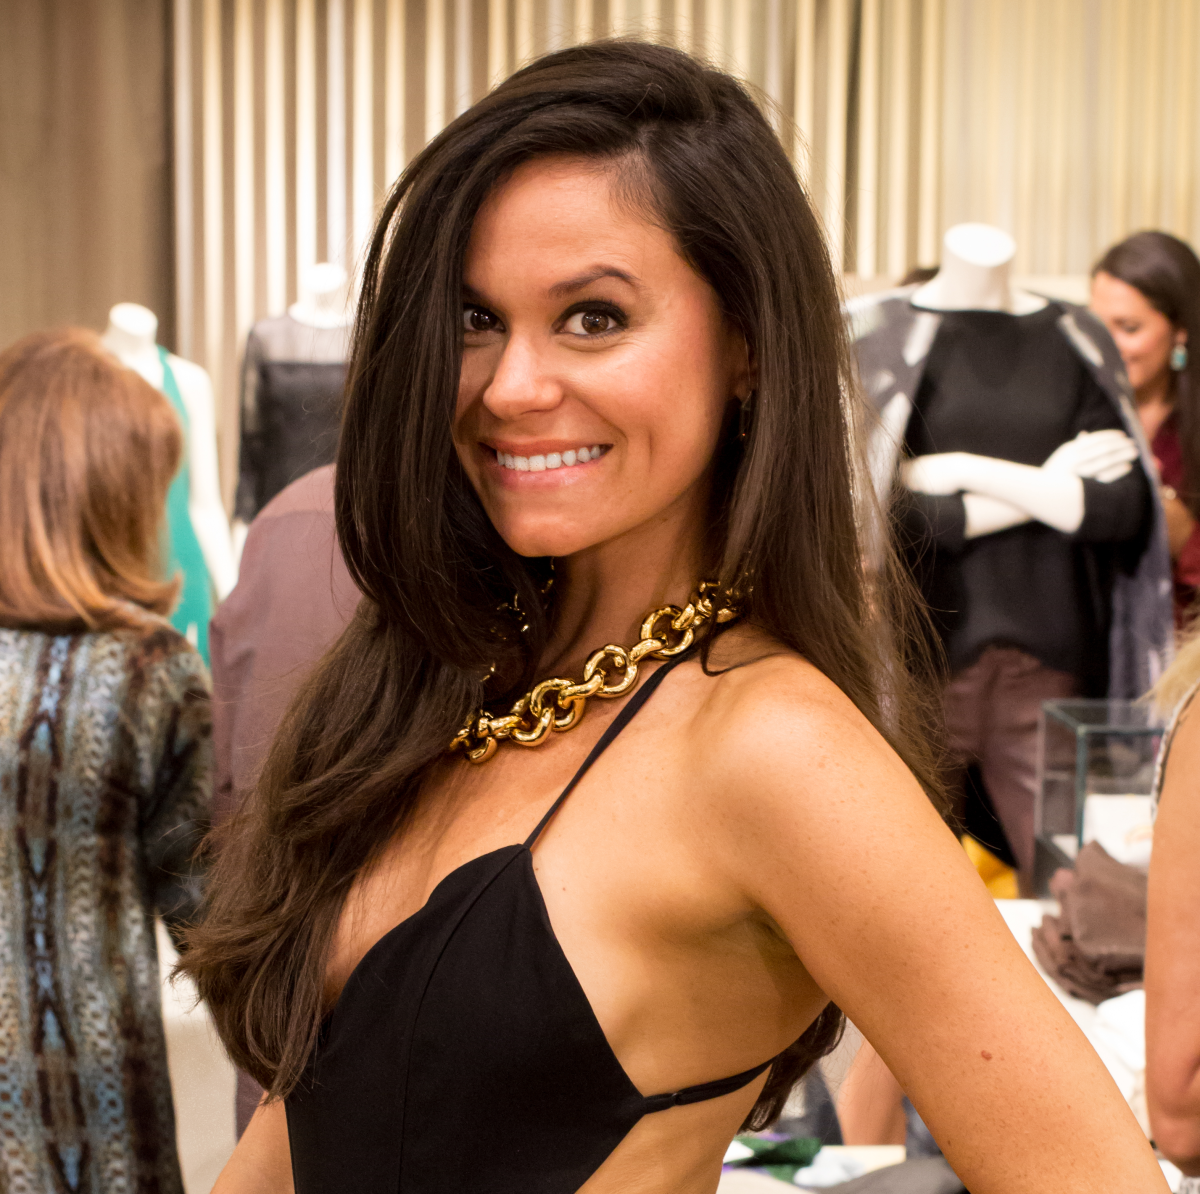 News, Shelby, Intermix opening, Oct. 2015 Natassia McMillian